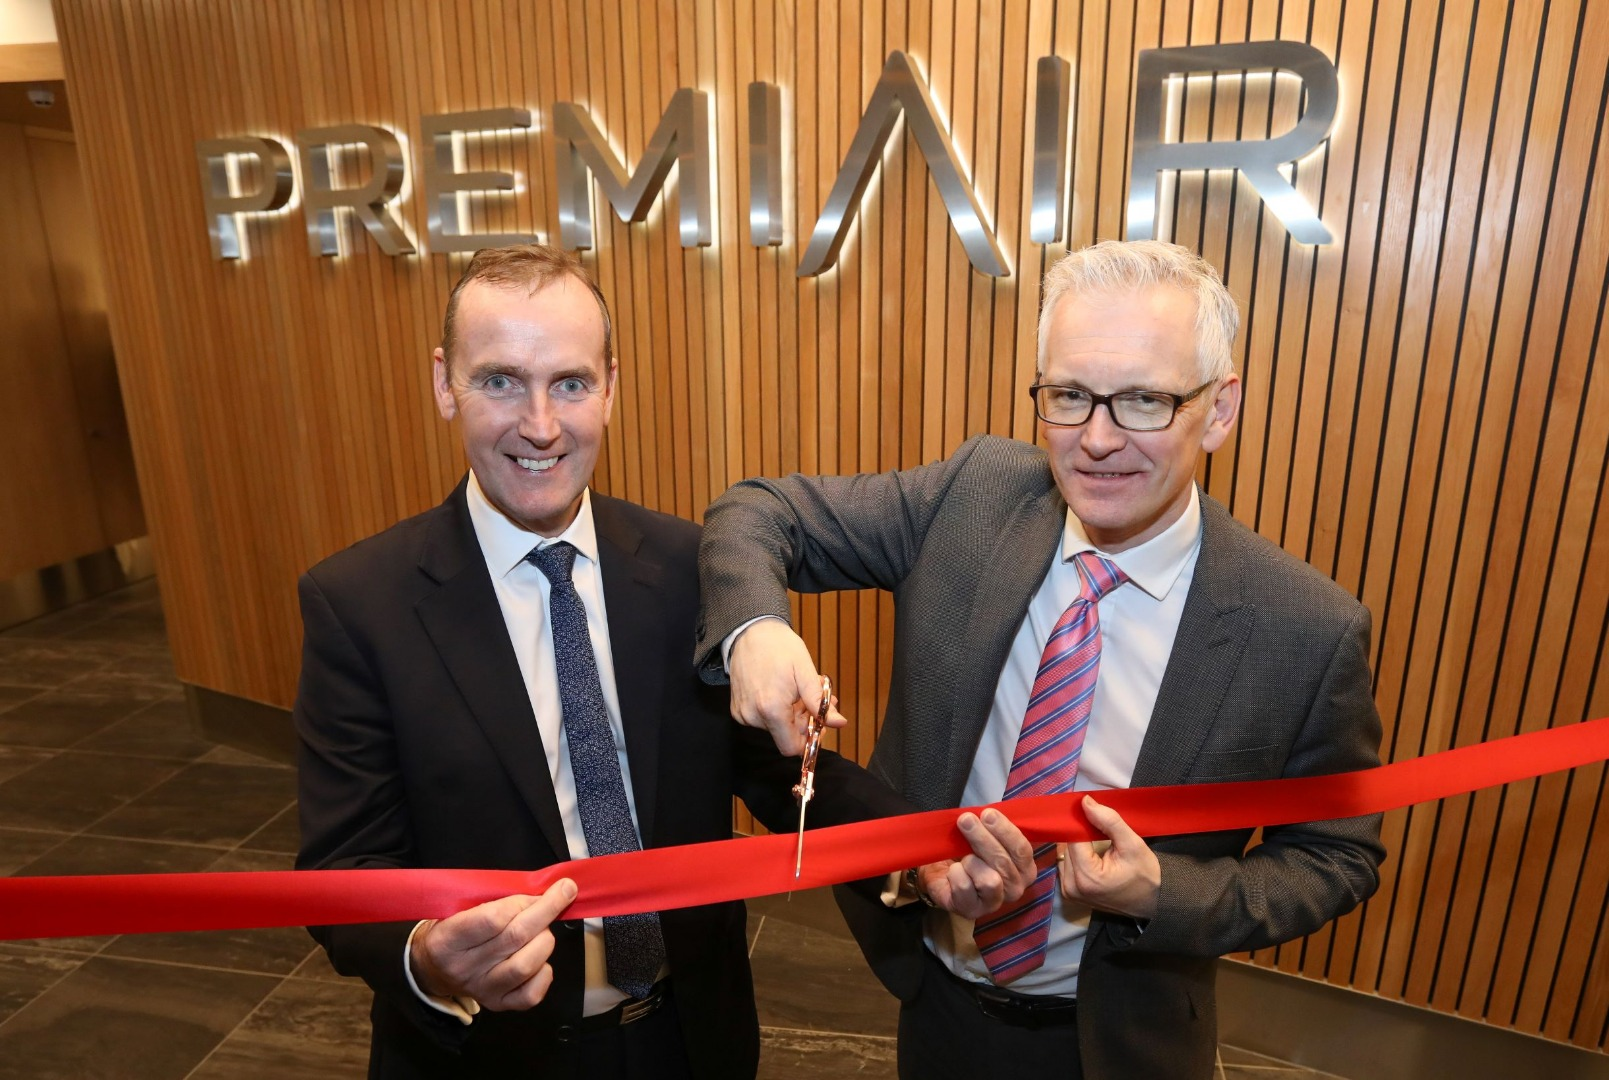 Manchester Airport has officially opened new private terminal, PremiAir